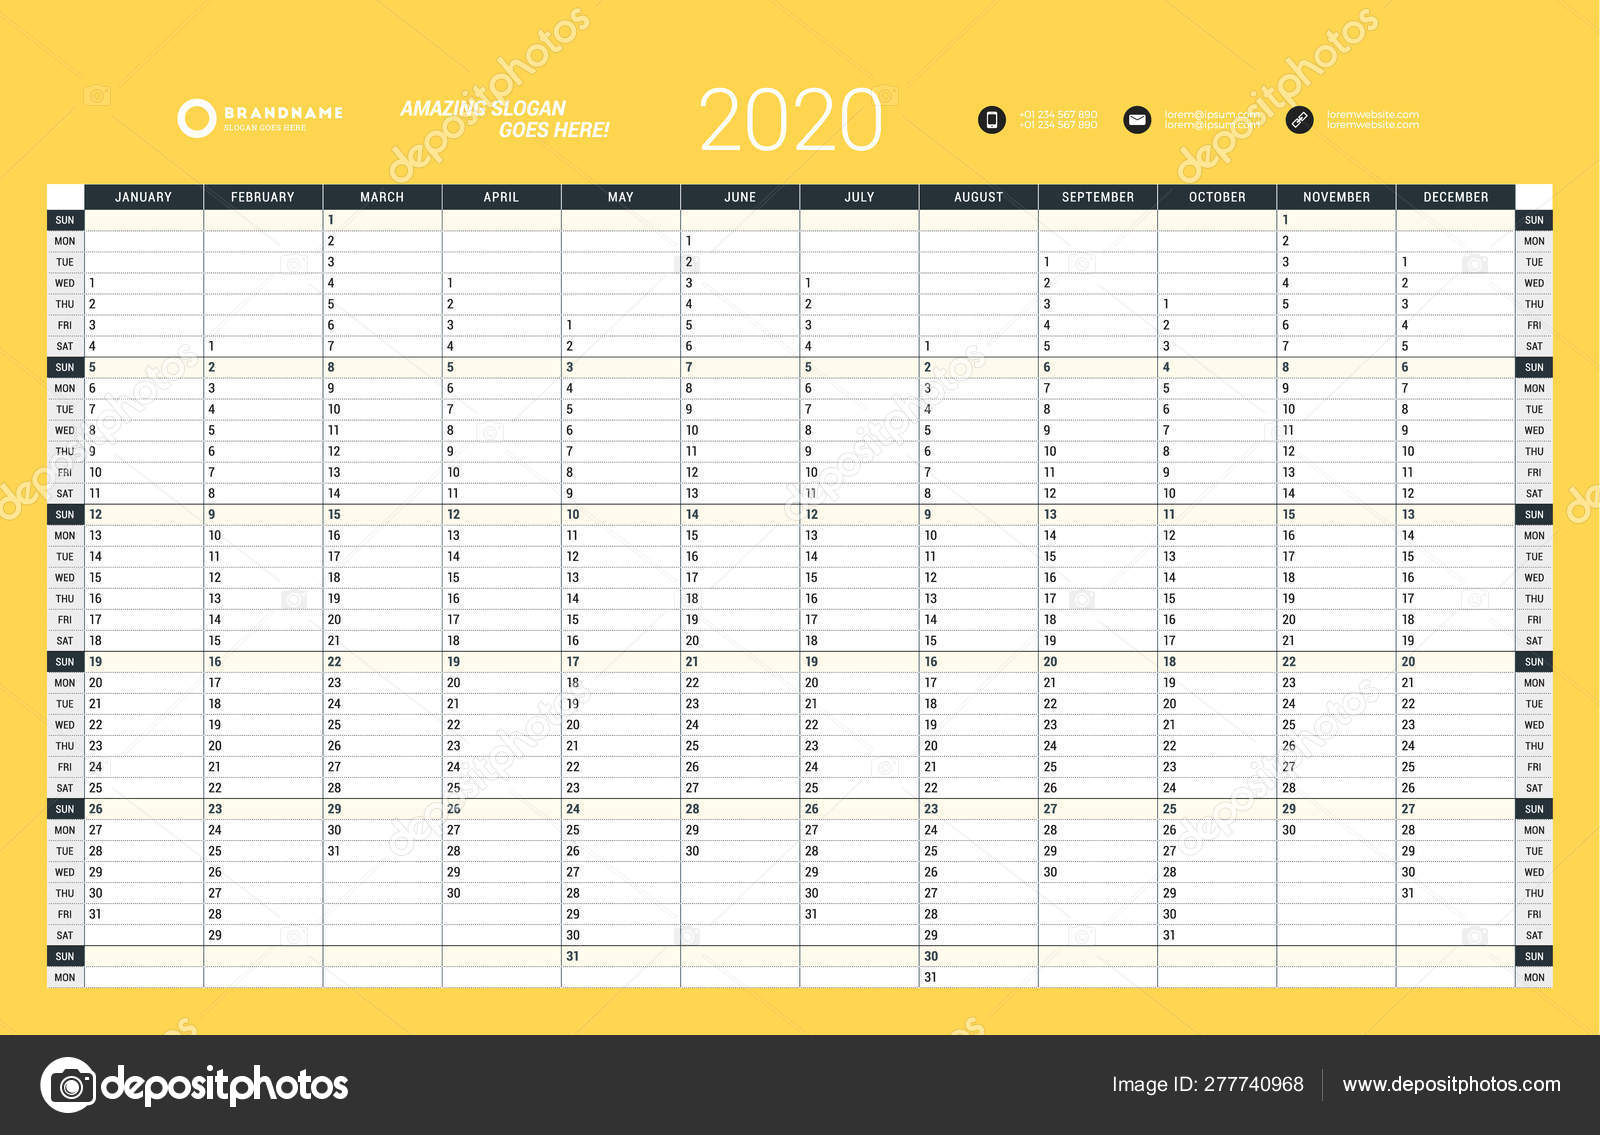 Wall Calendar Yearly Planner Template For 2020. Vector